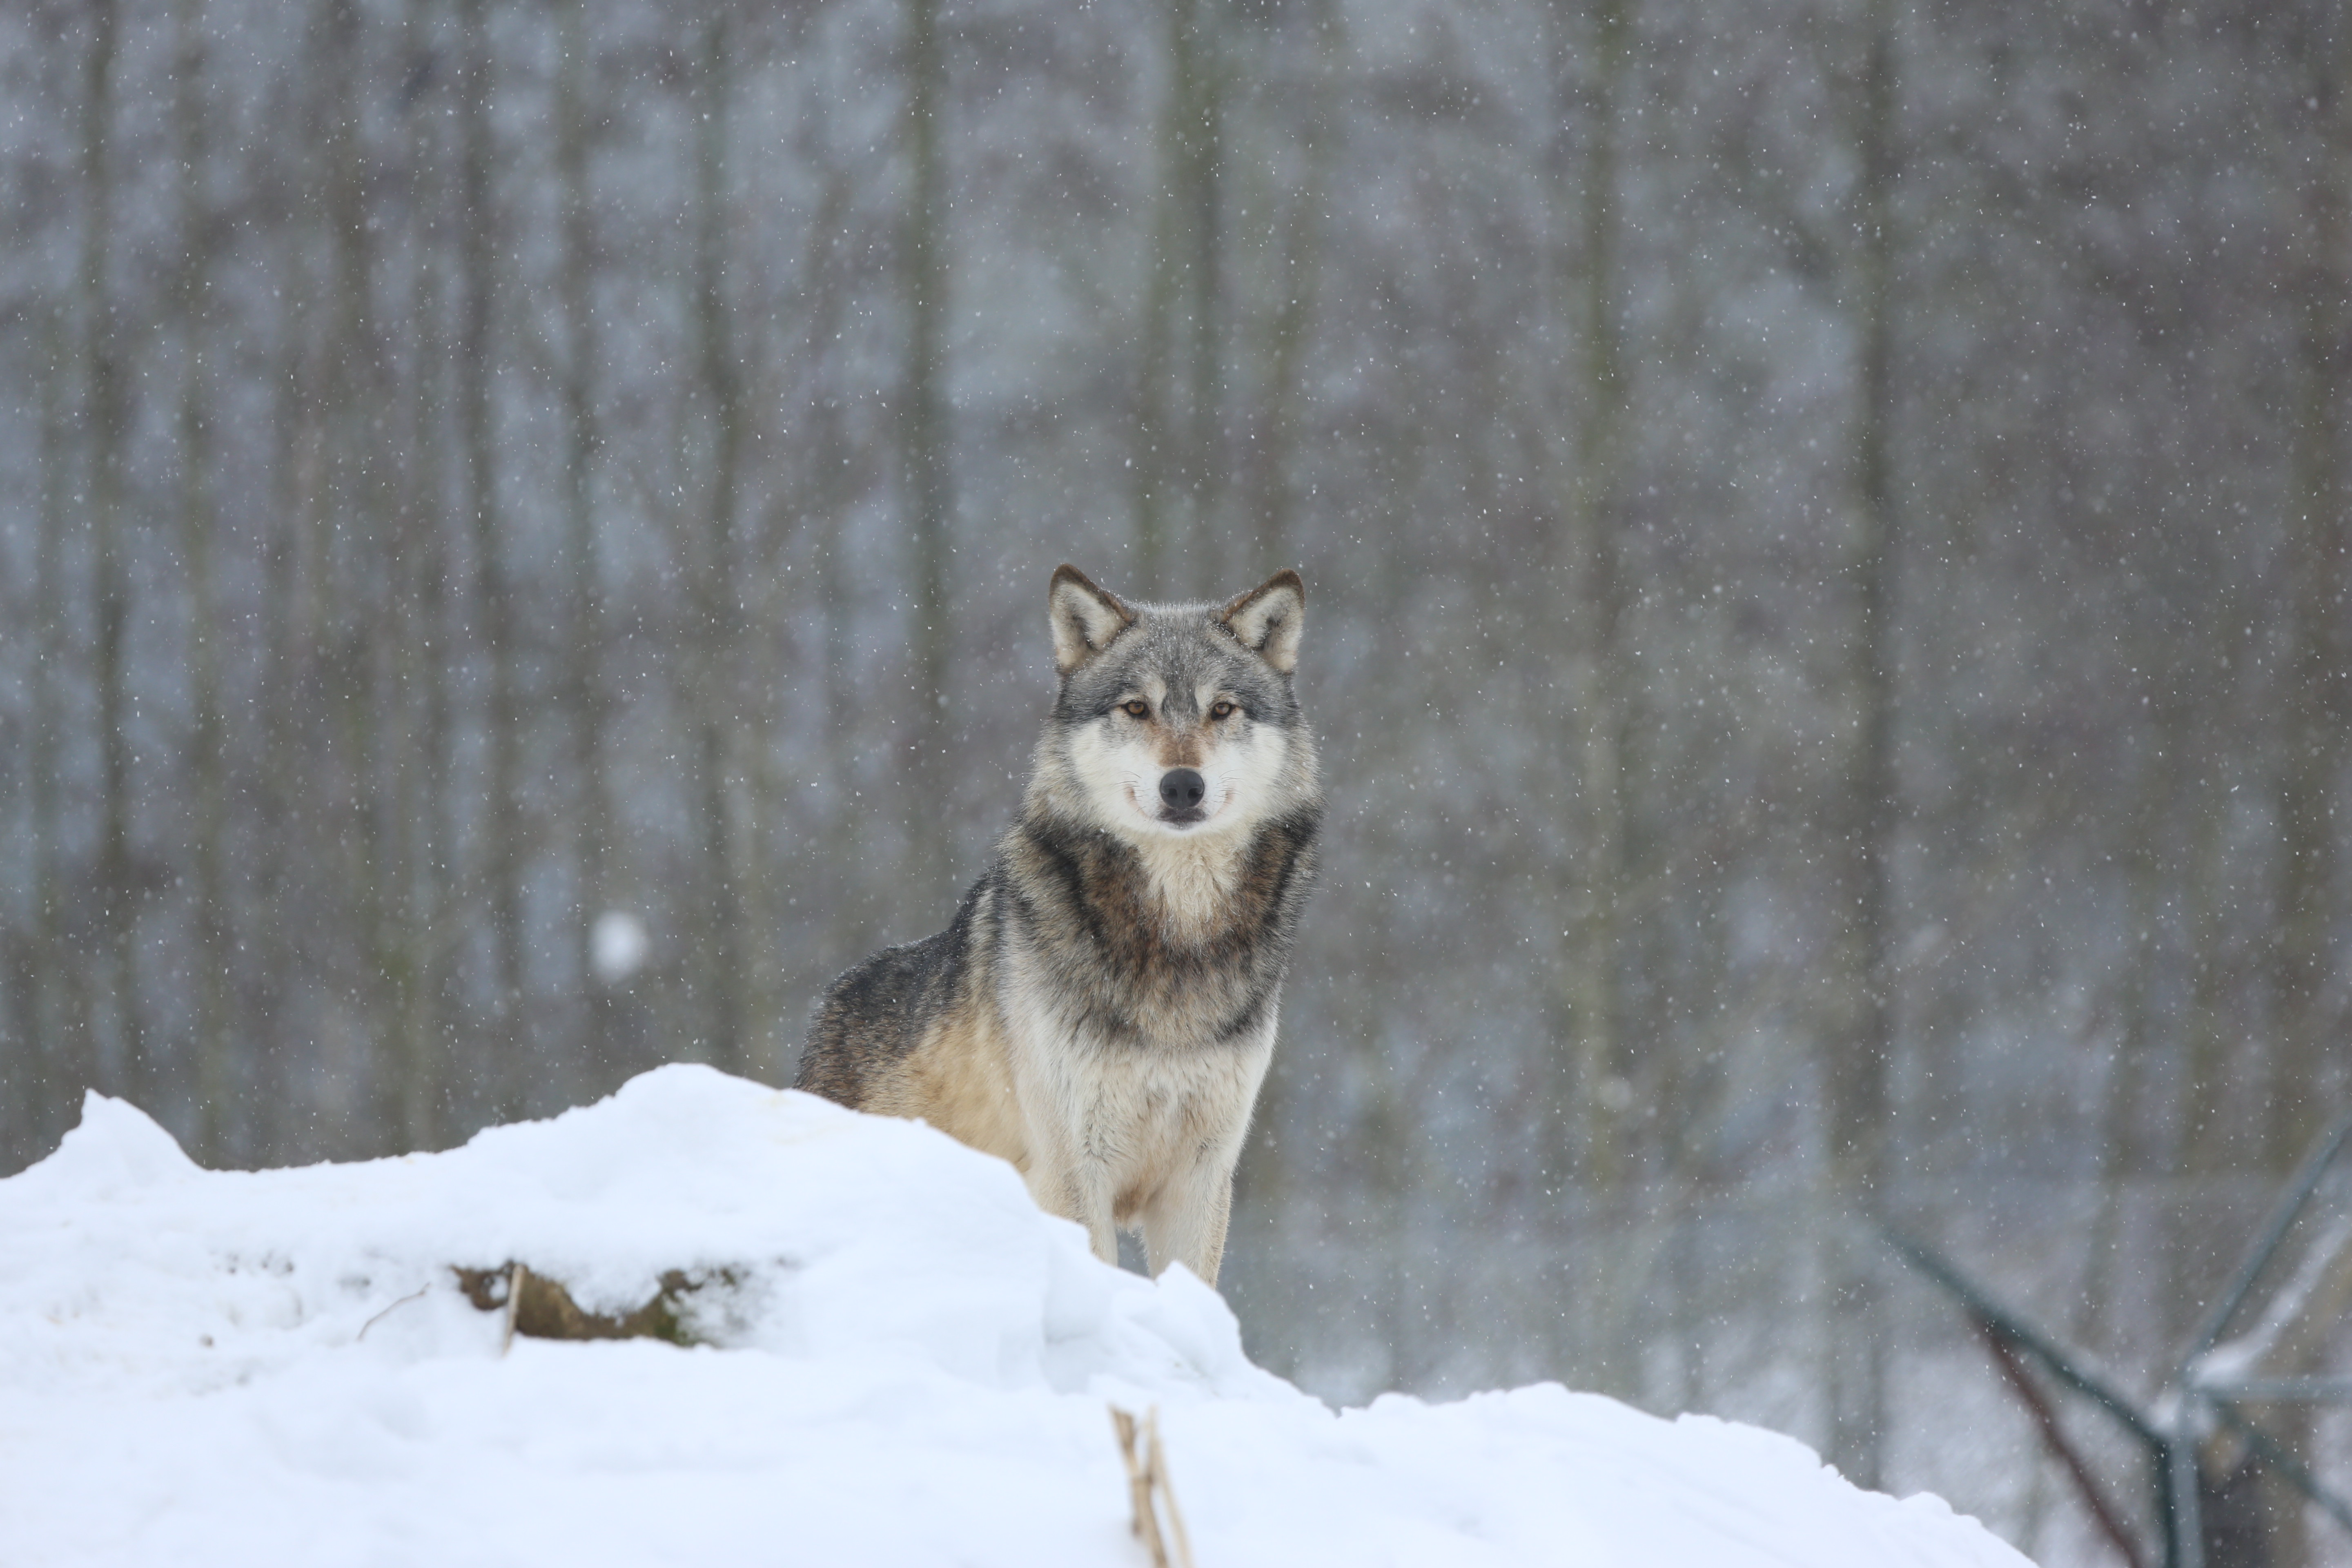 127468 download wallpaper Animals, Wolf, Predator, Snow, Grey screensavers and pictures for free